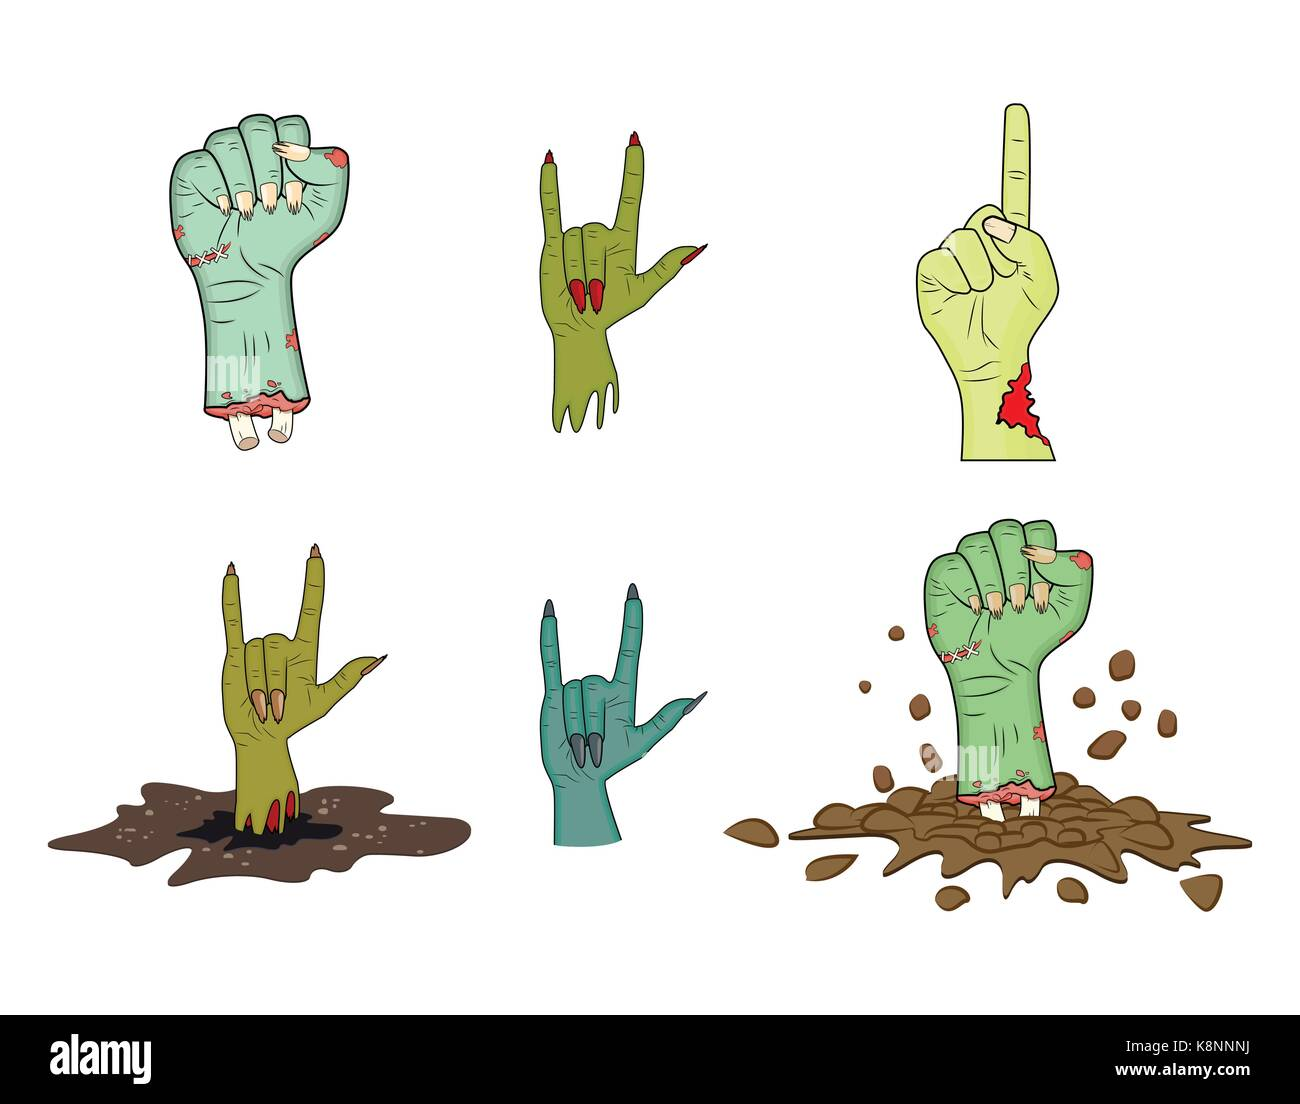 Satan vector vectors stock photos satan vector vectors stock halloween zombie hand gesture vector set realistic cartoon isolated illustration image of scary monster buycottarizona